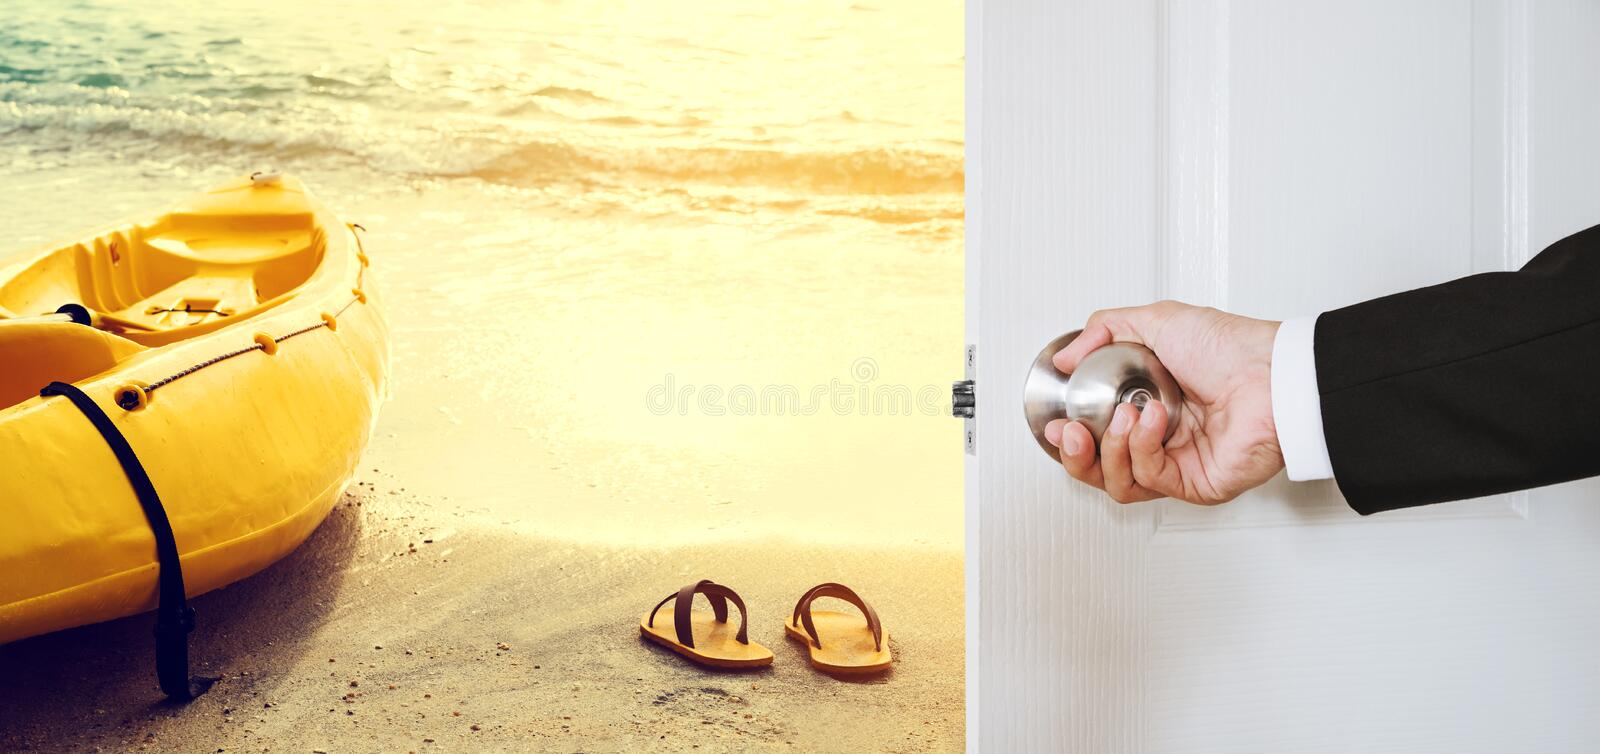 Businessman hand holding door knob, opening to the beach with yellow kayak and flip flop, vintage tone, business summer vacation stock photo